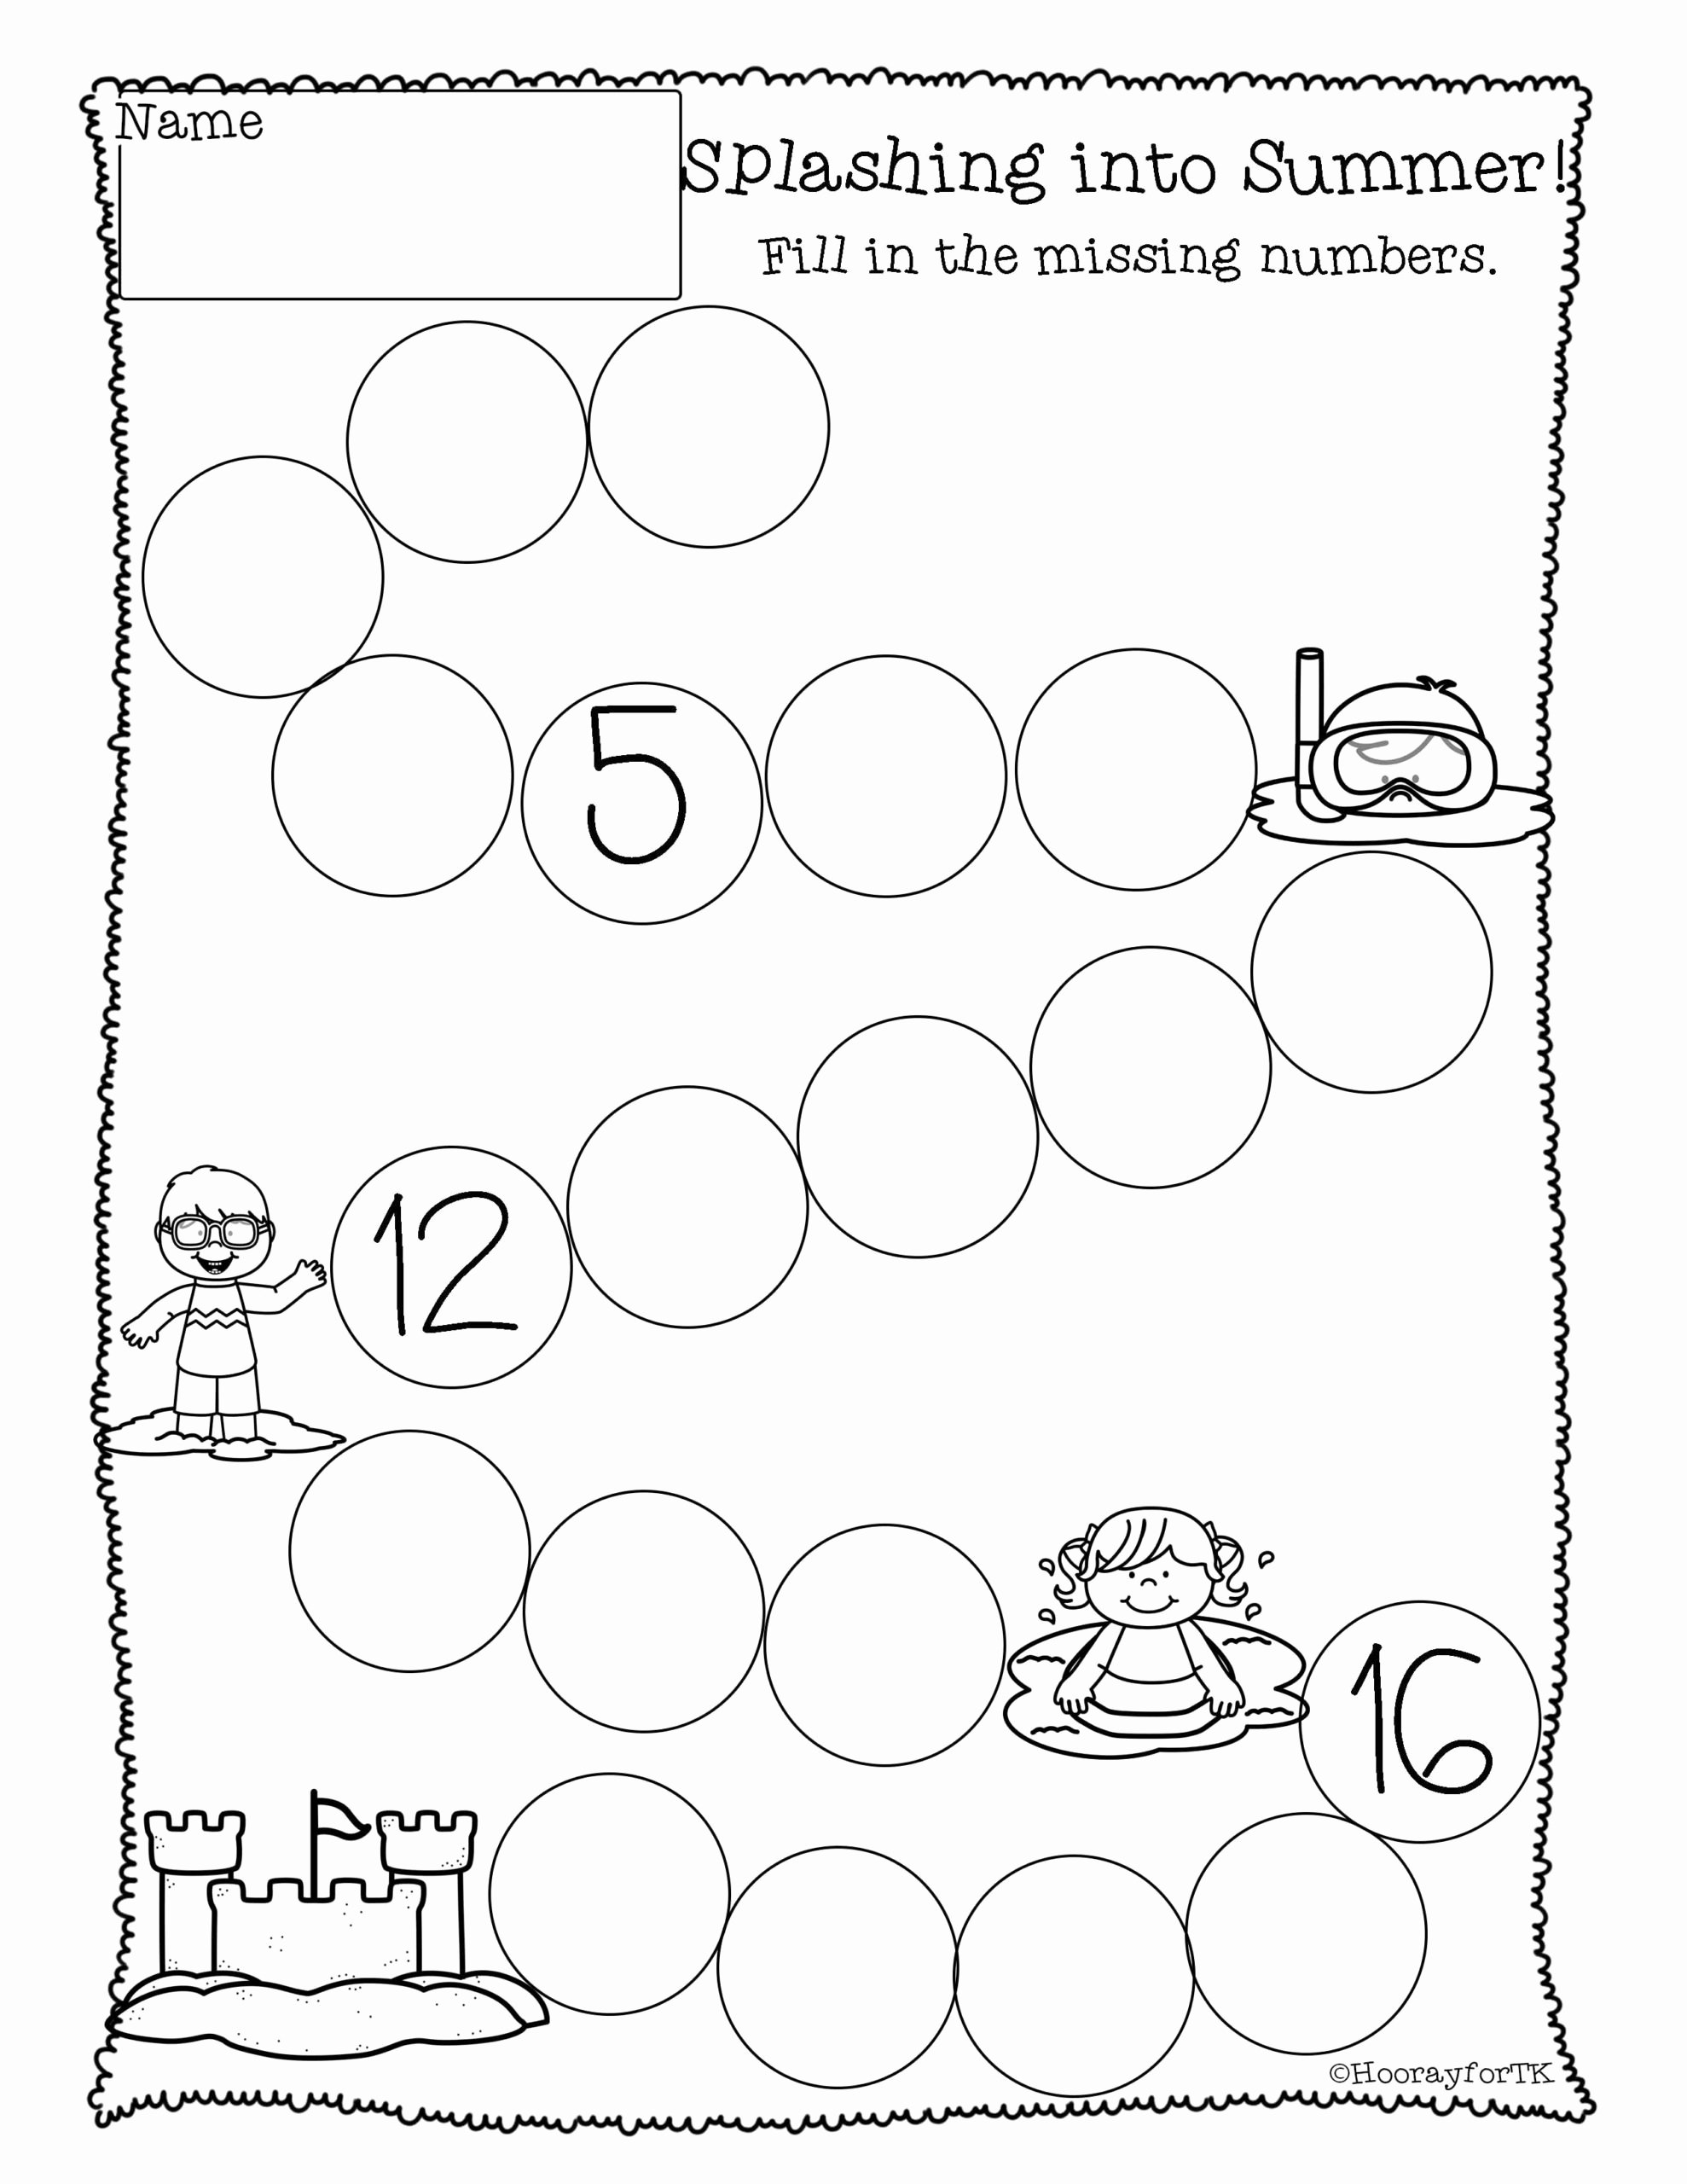 Worksheets for Preschoolers Math top Worksheets Printable Math Activities Kindergarten Free Pre